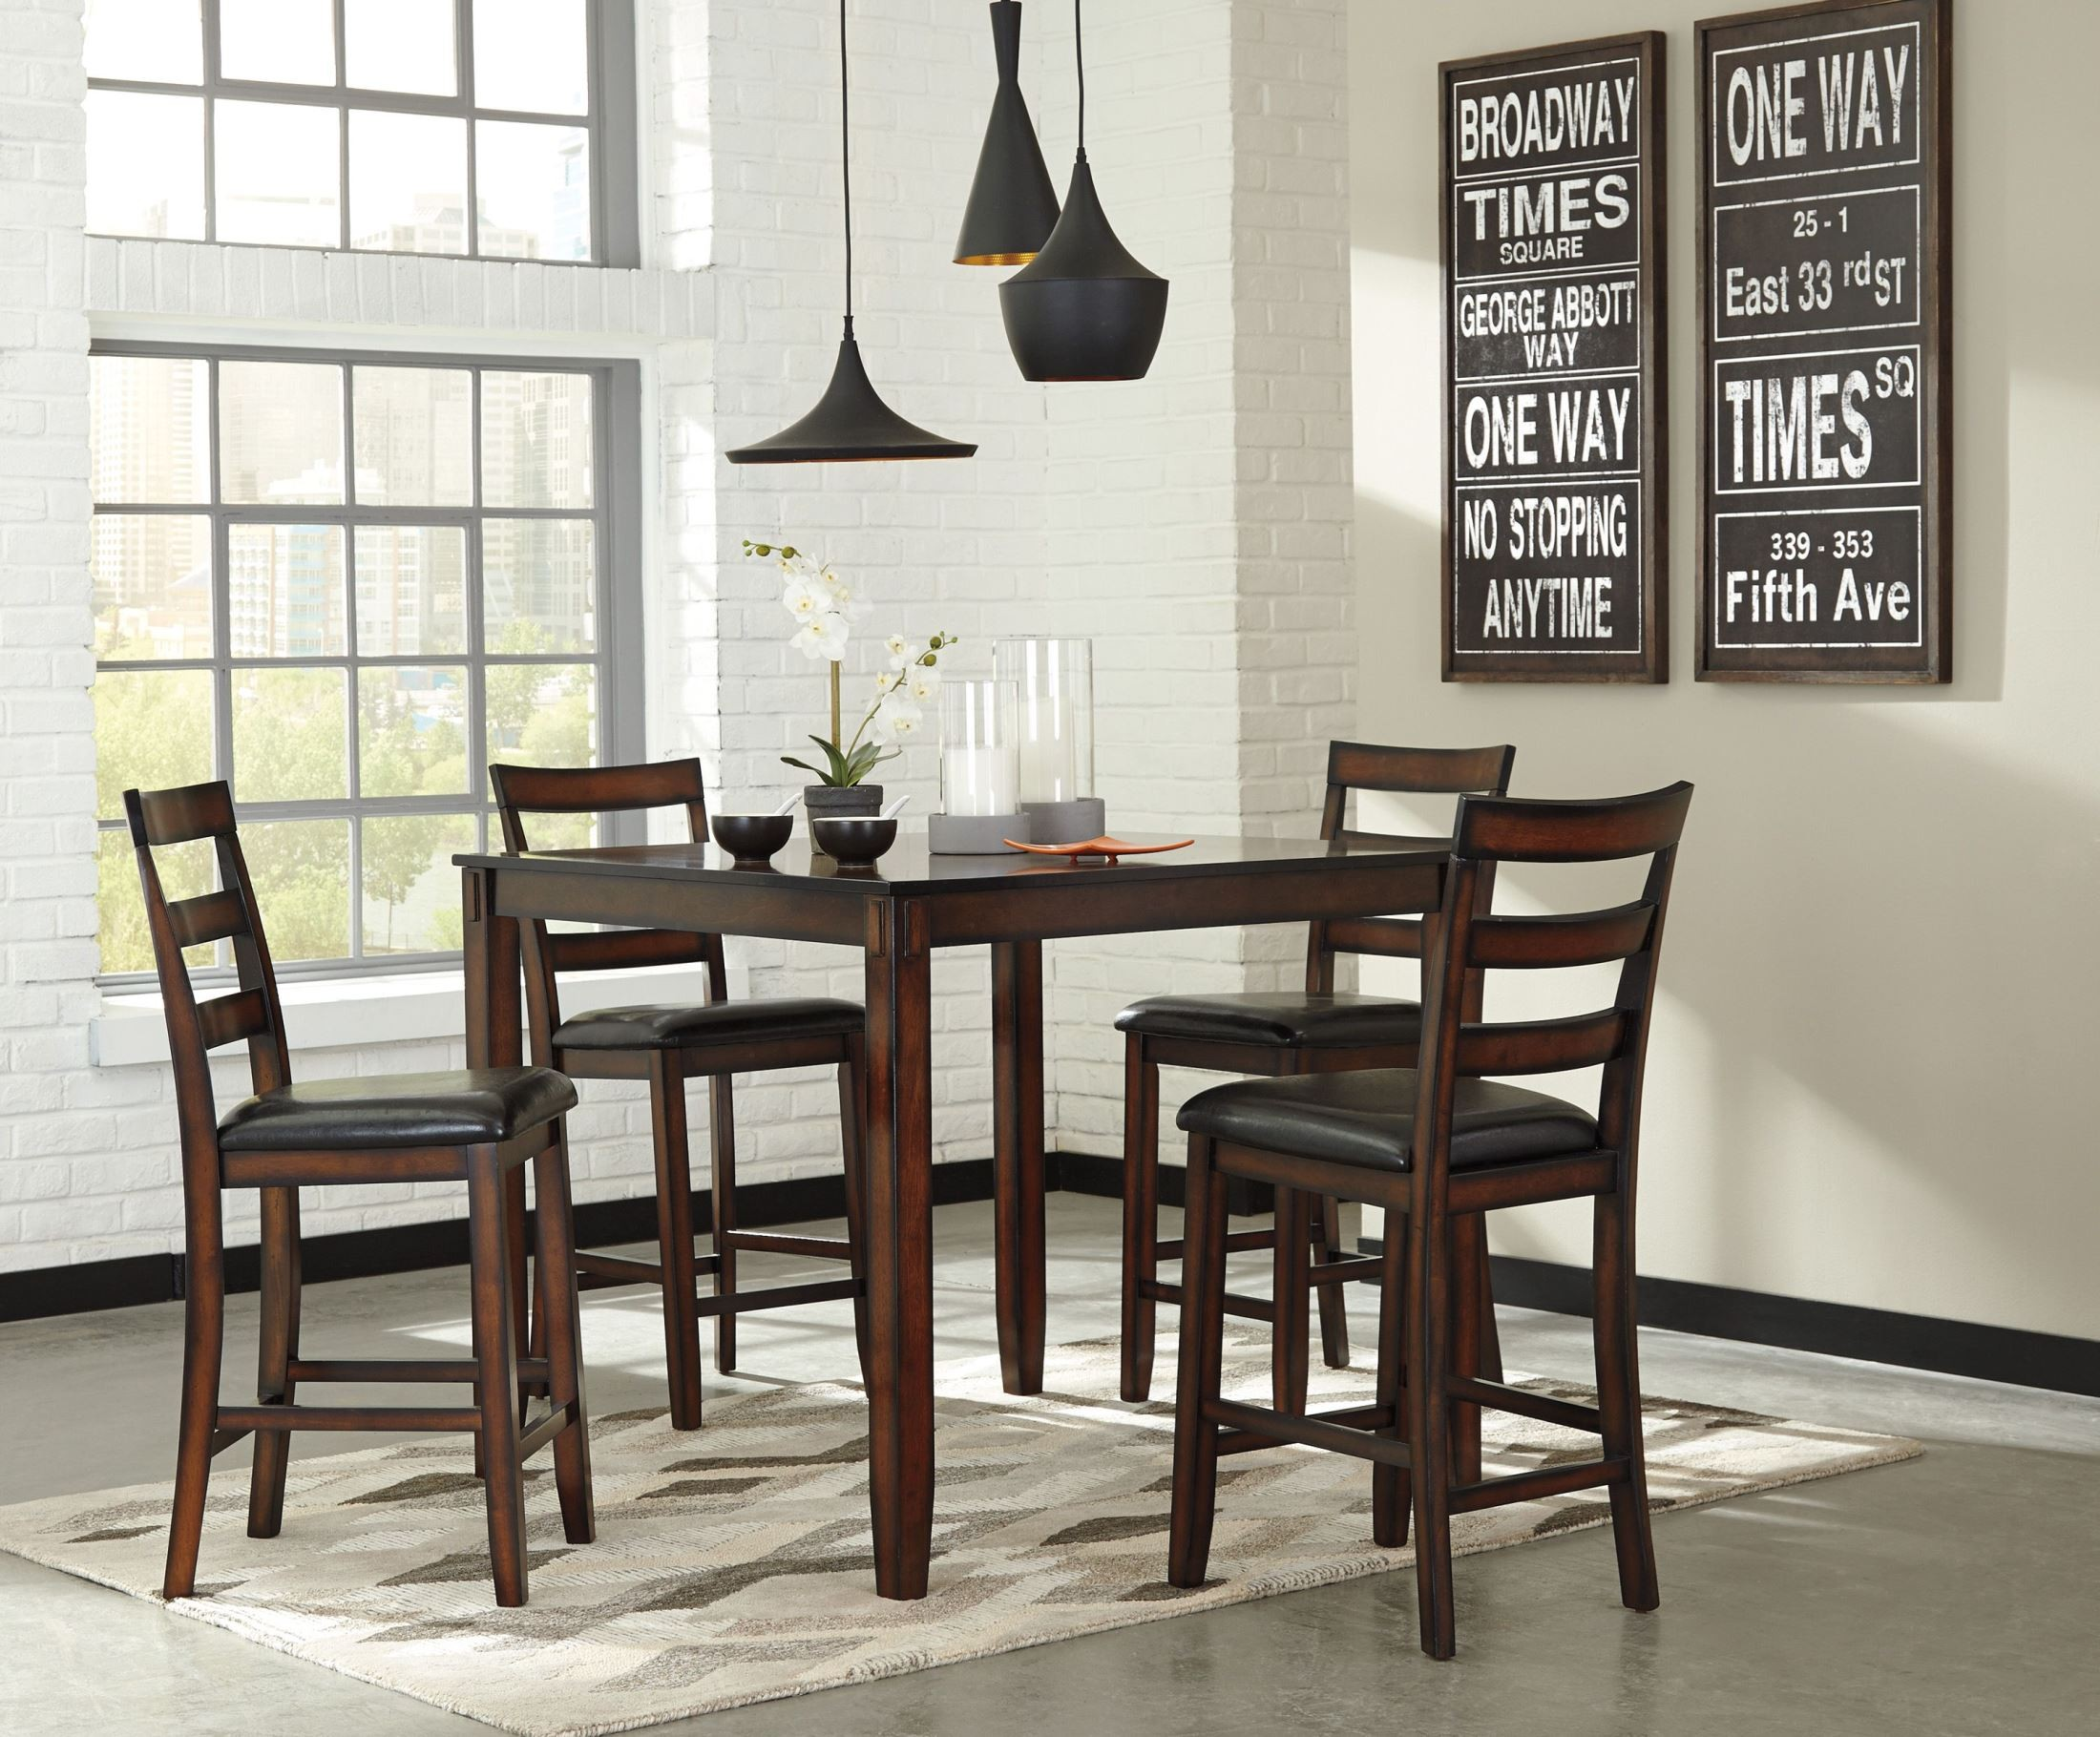 Coviar Brown 5 Piece Counter Height Dining Room Set D385